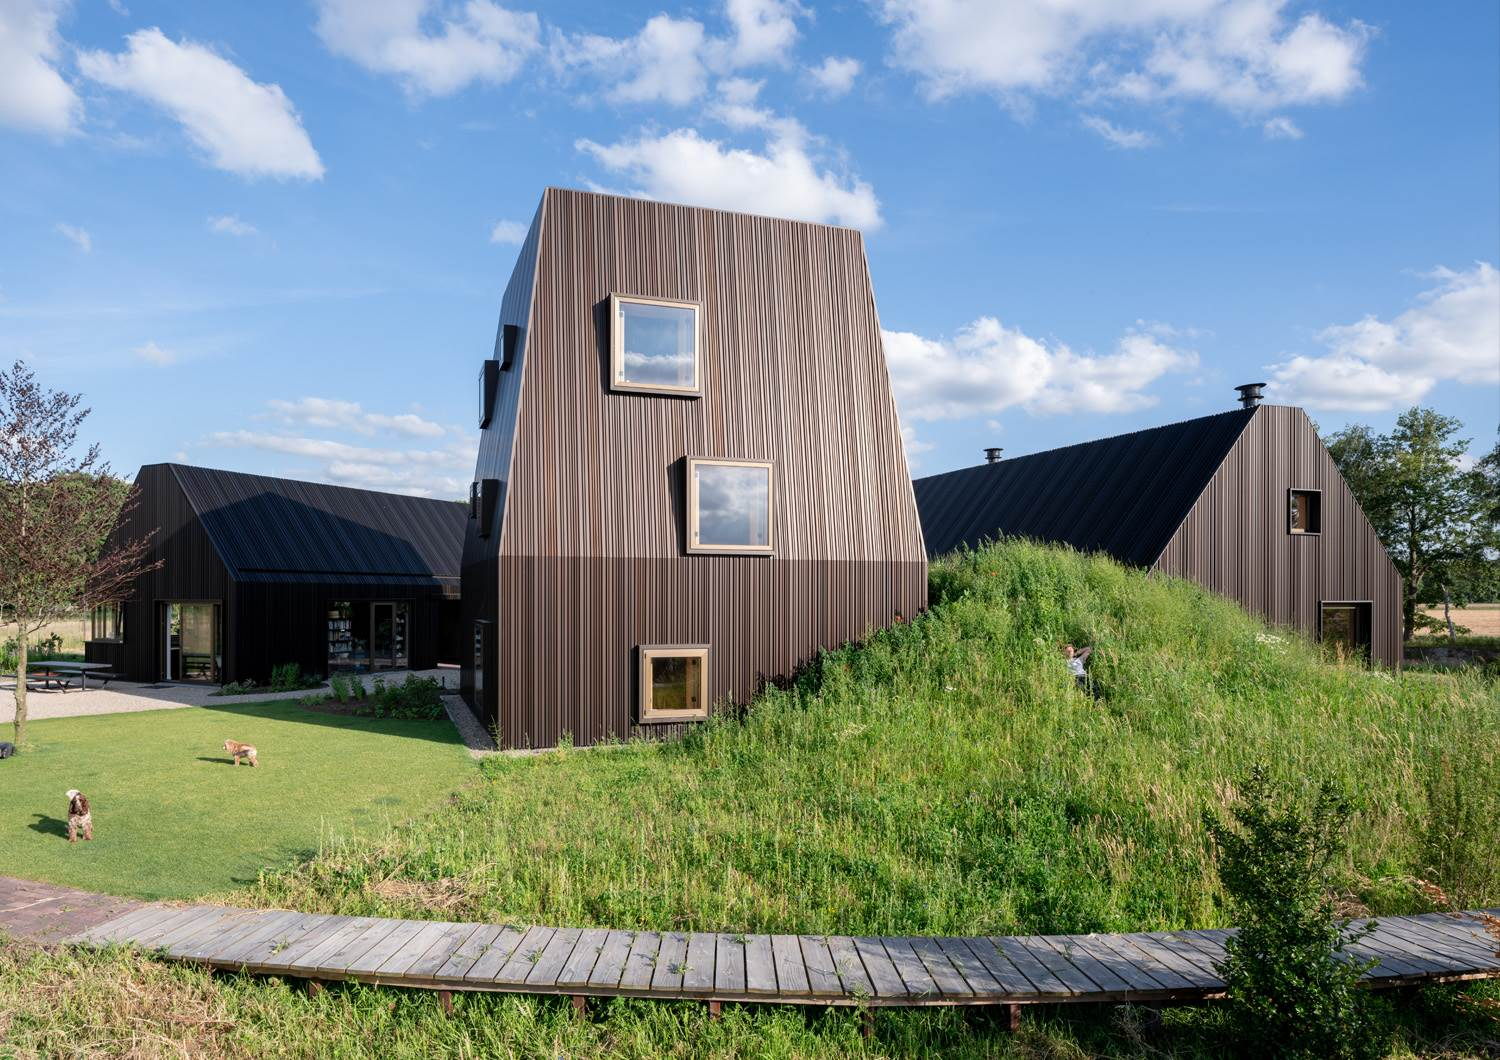 Exterior of black clad house with square windows set into a grassy mound.